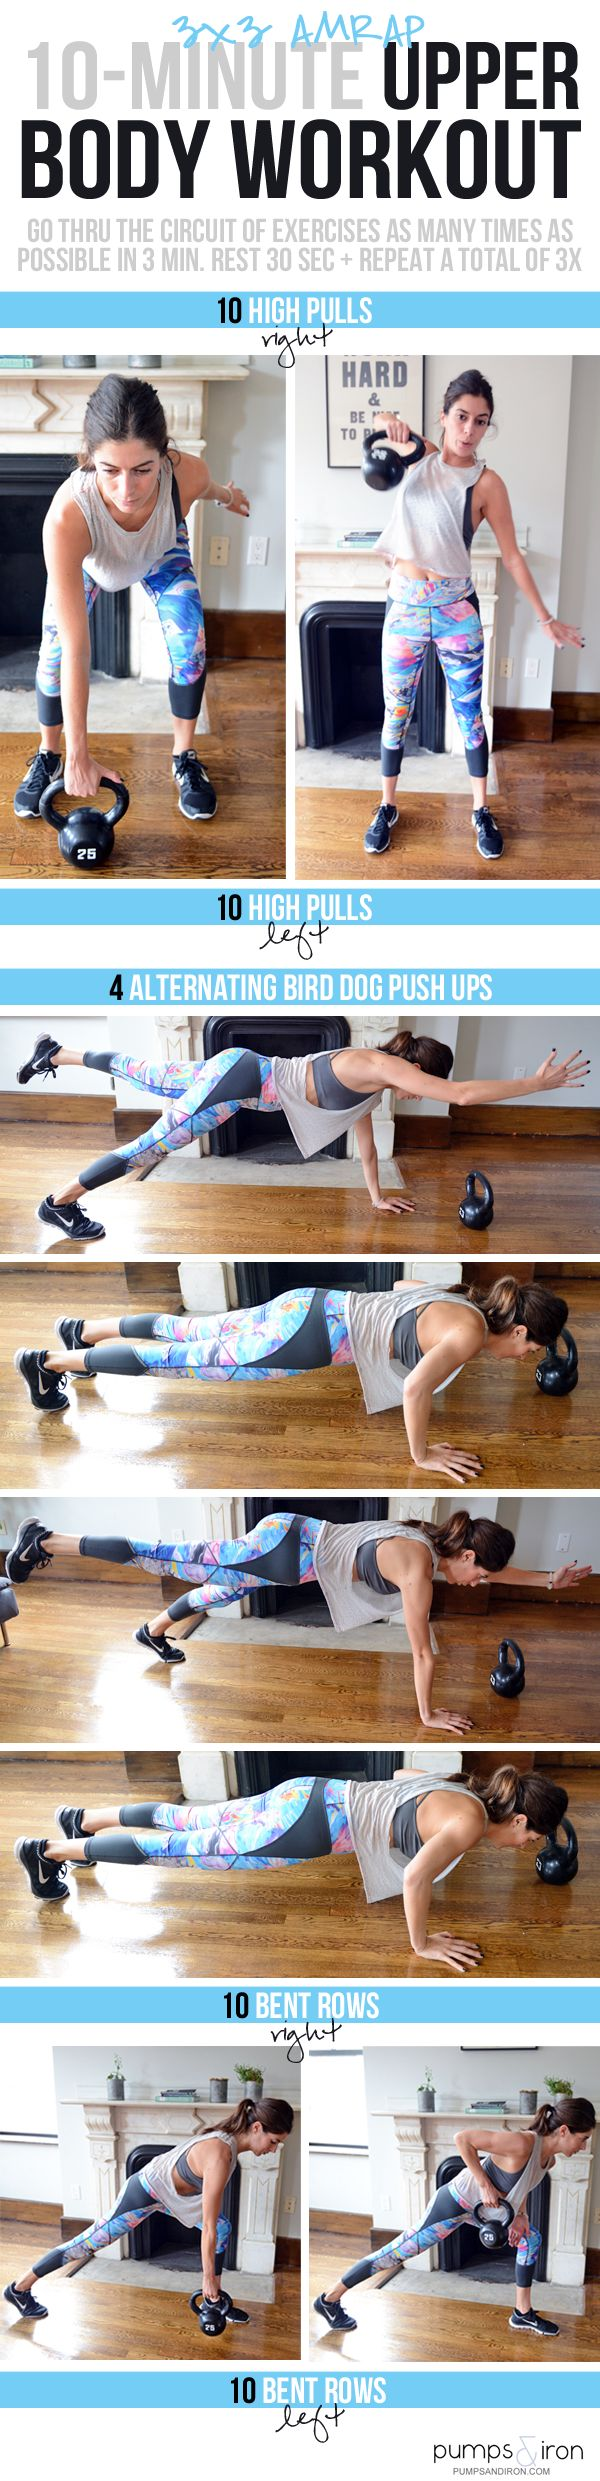 10-Minute Upper Body Workout -- fun 3x3 AMRAP structure